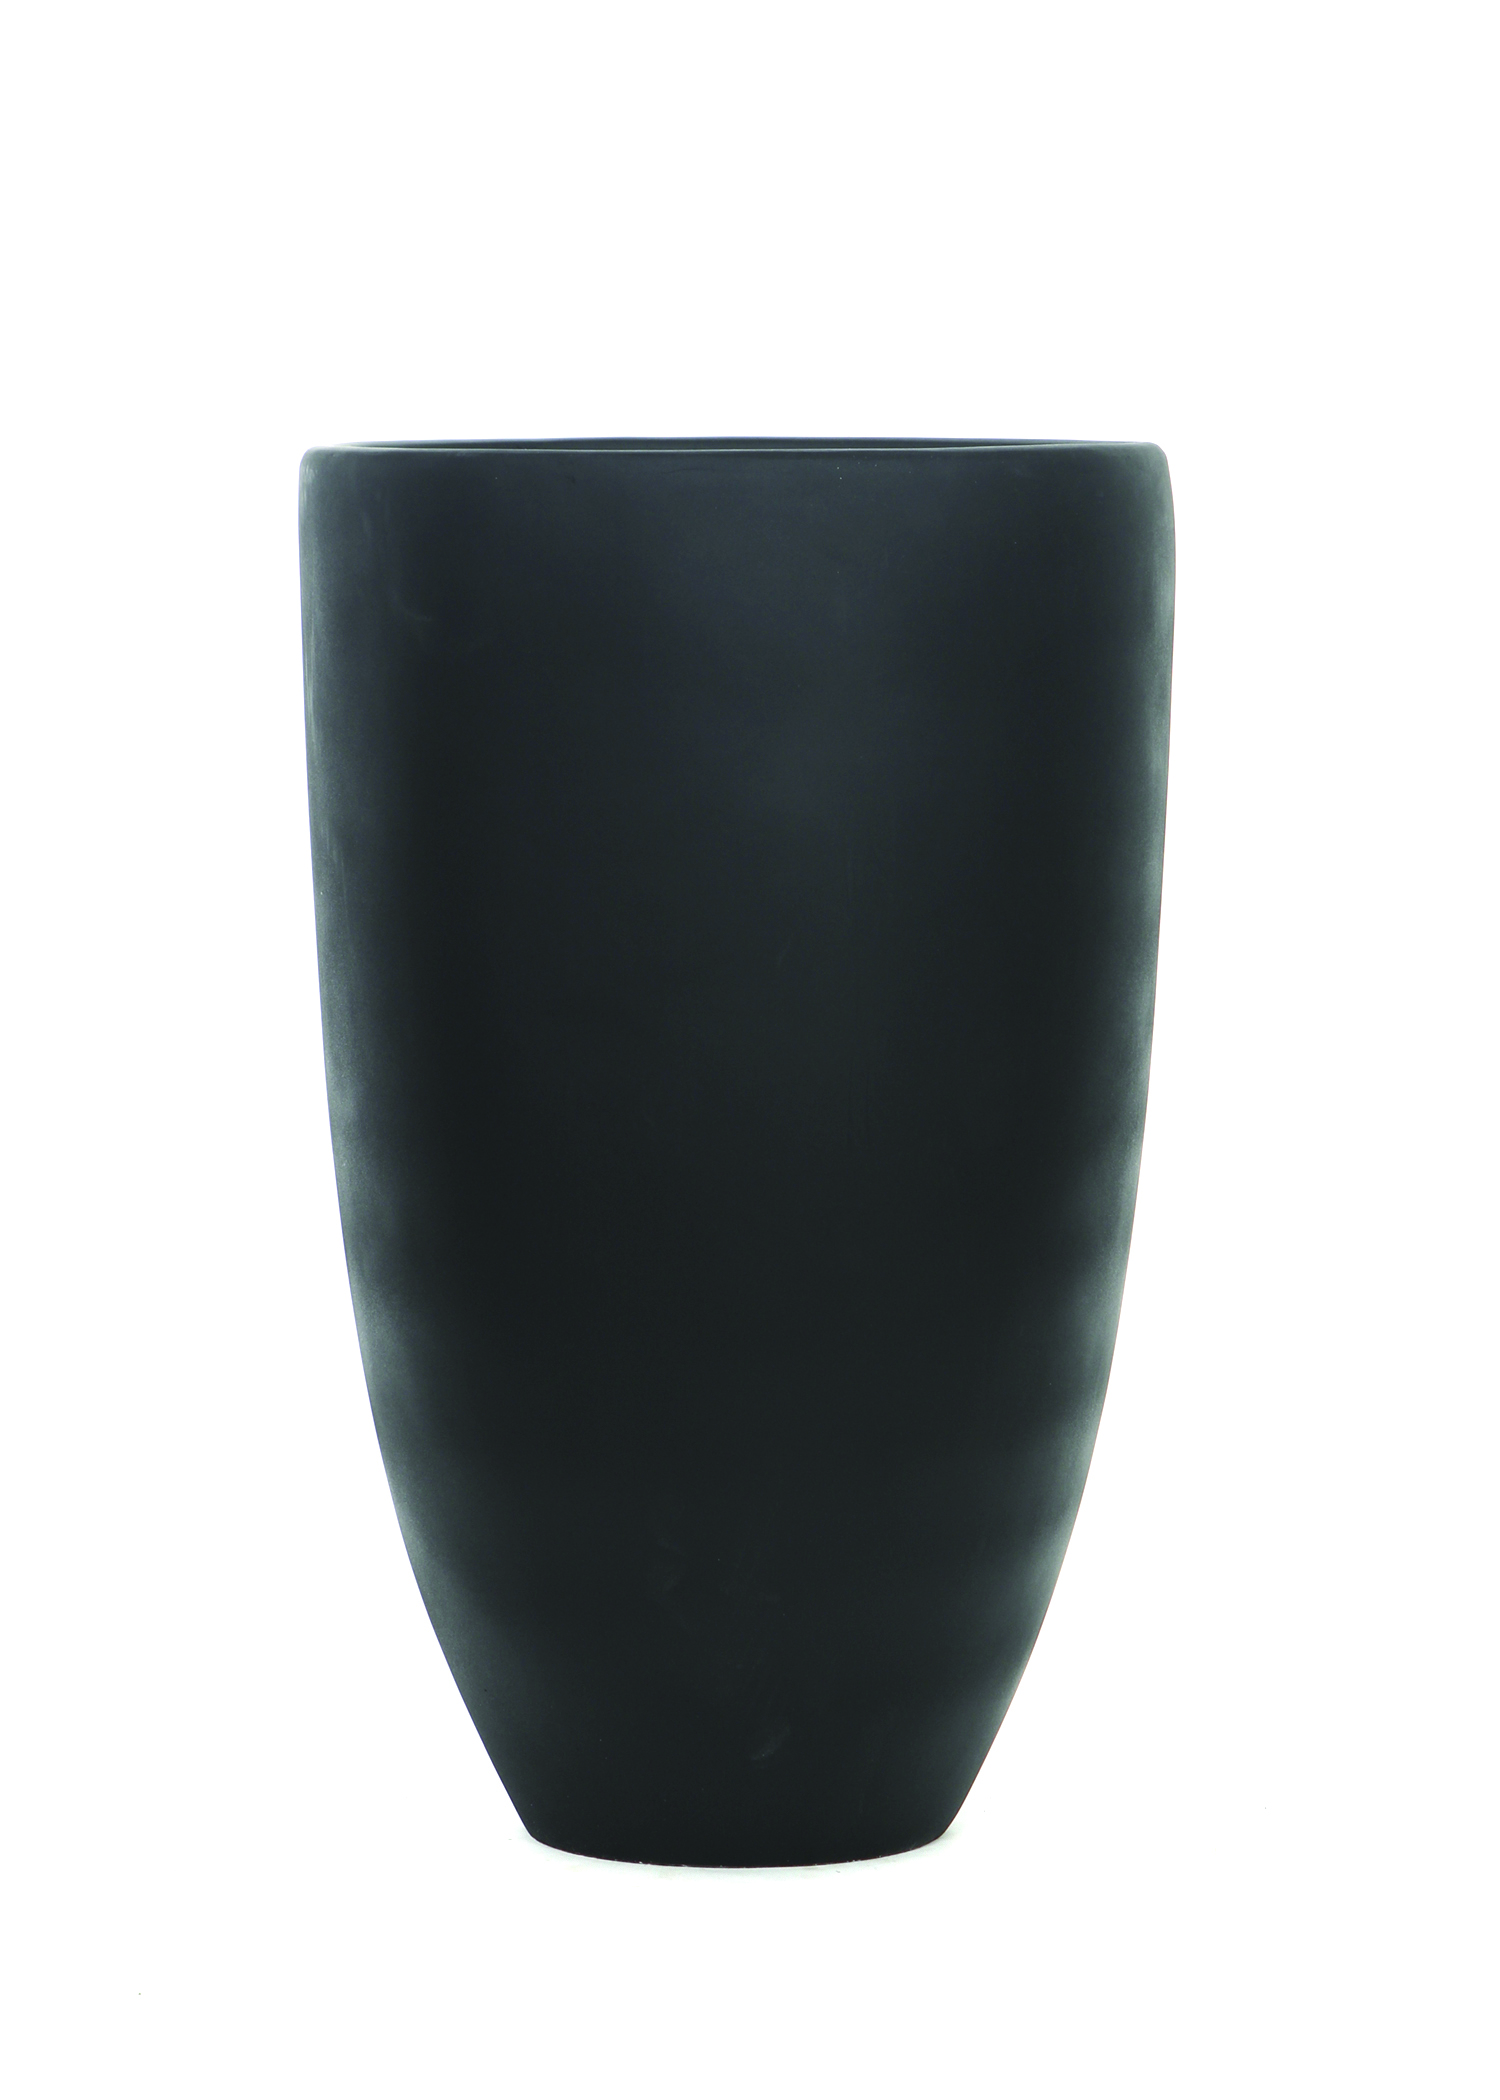 TALL BLACK ROUND TAPERED RESIN POT